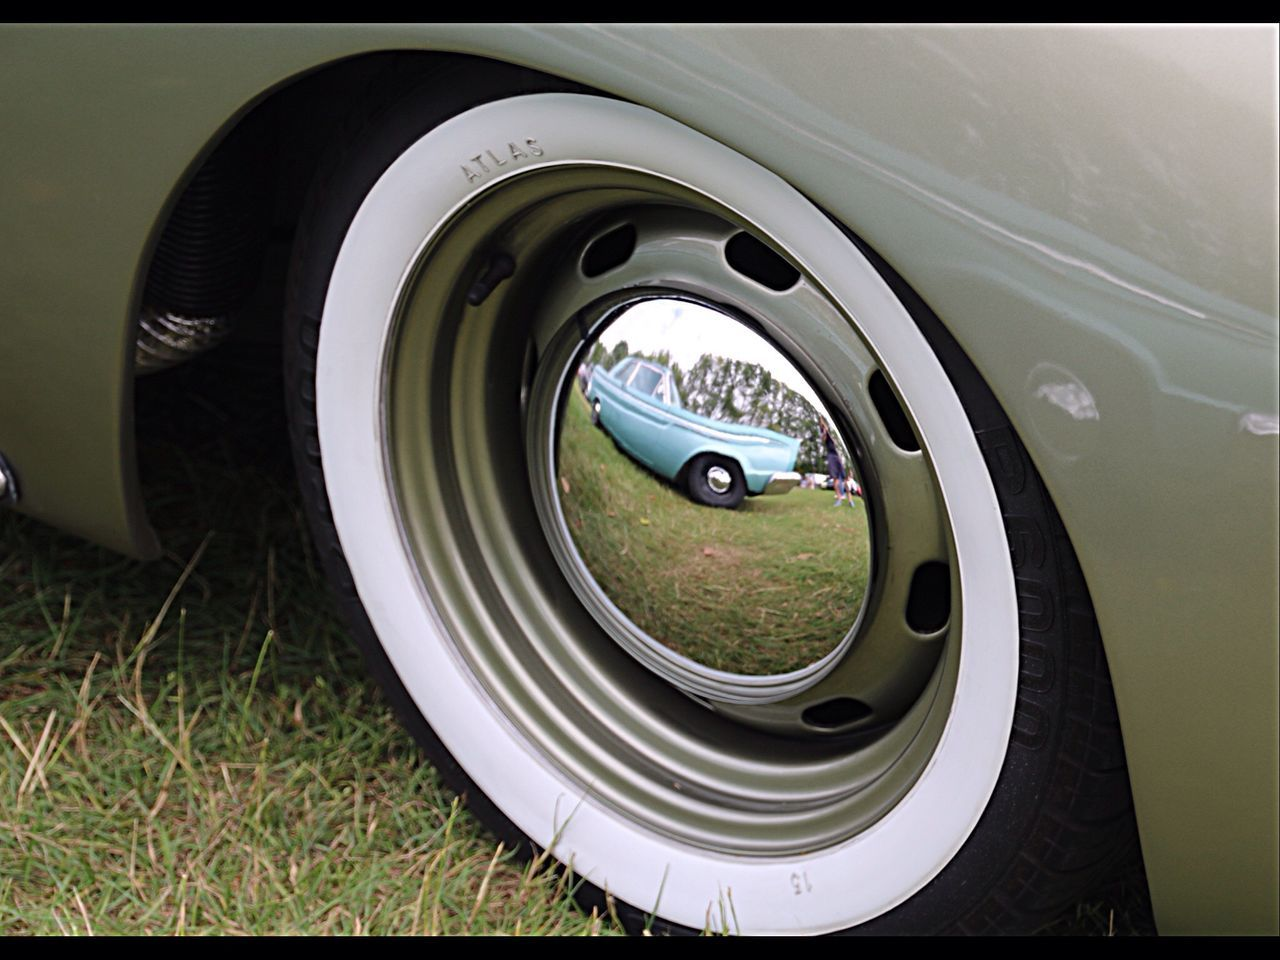 Vintage Cars American Classics American Cars Classic Cars Classic Car Nofilter Nofilter#noedit Wheel Reflection_collection Reflection Porsche